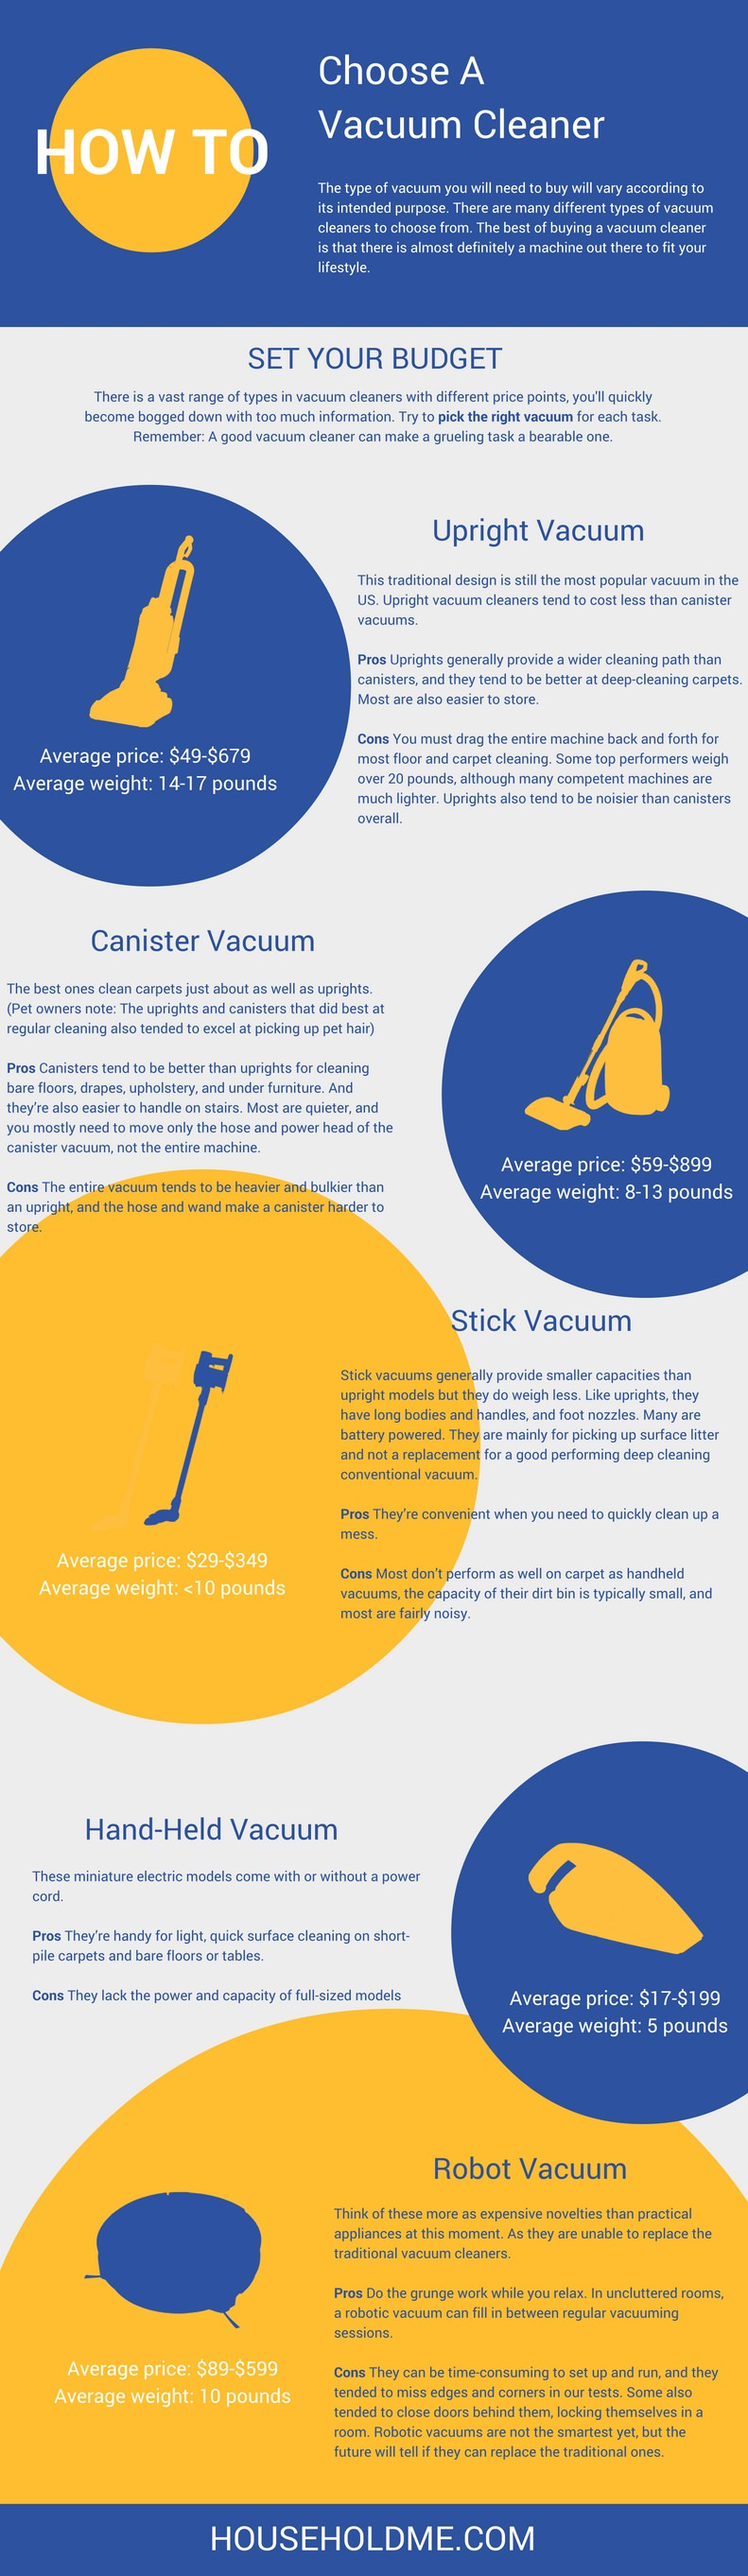 How-to-Choose-a-Vacuum-Cleaner-infographic-plaza